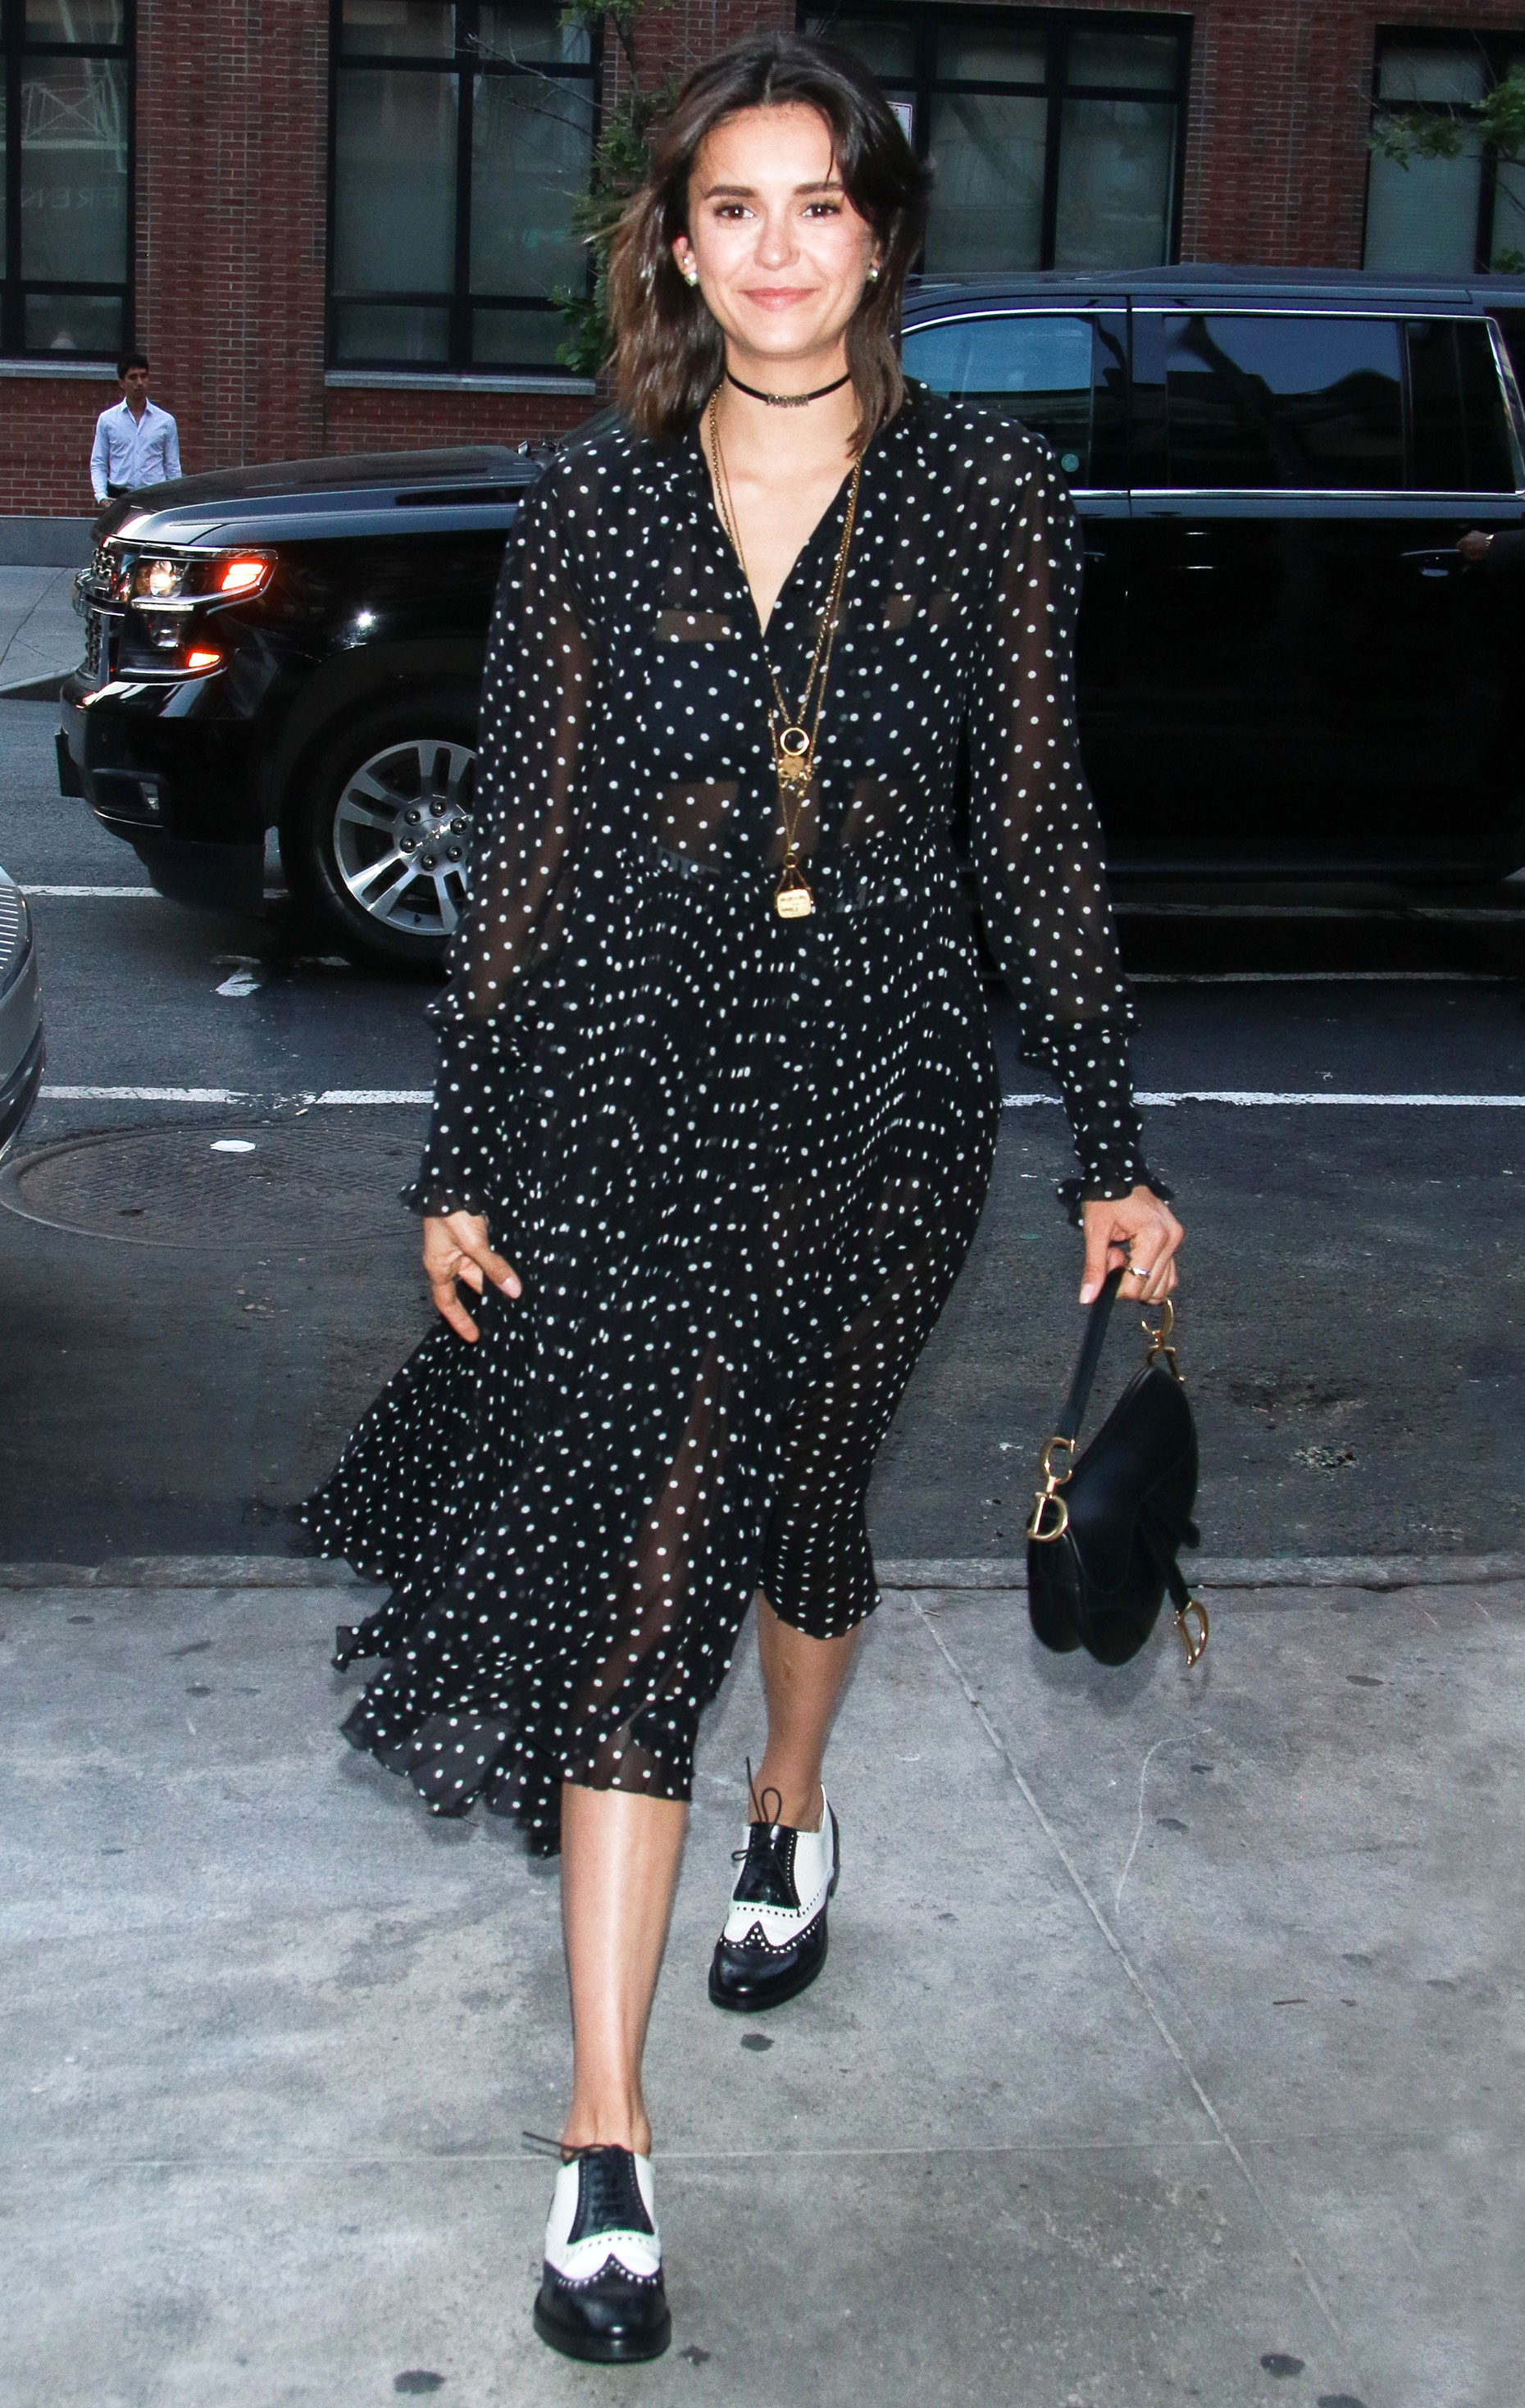 Nina Dobrev - The actress hit a June 7 Dior Beauty daytime event with a polka dot dress, two tone shoes and the iconic purse.